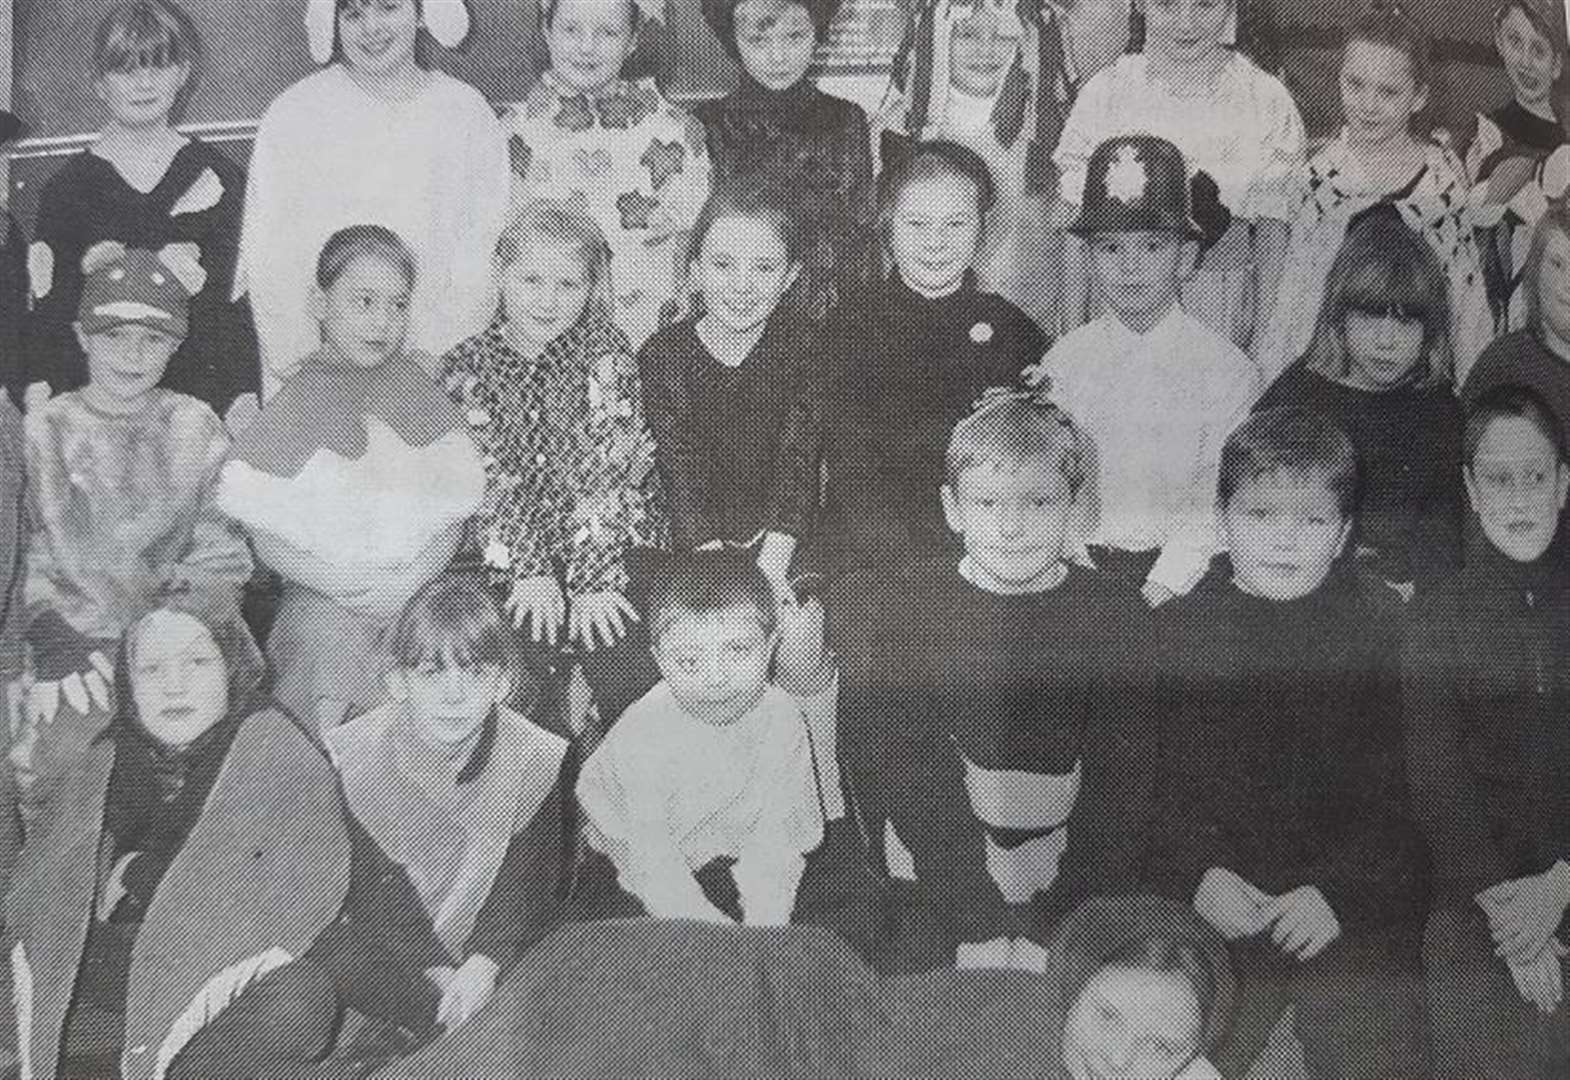 St Norberts' musical delights in 2000